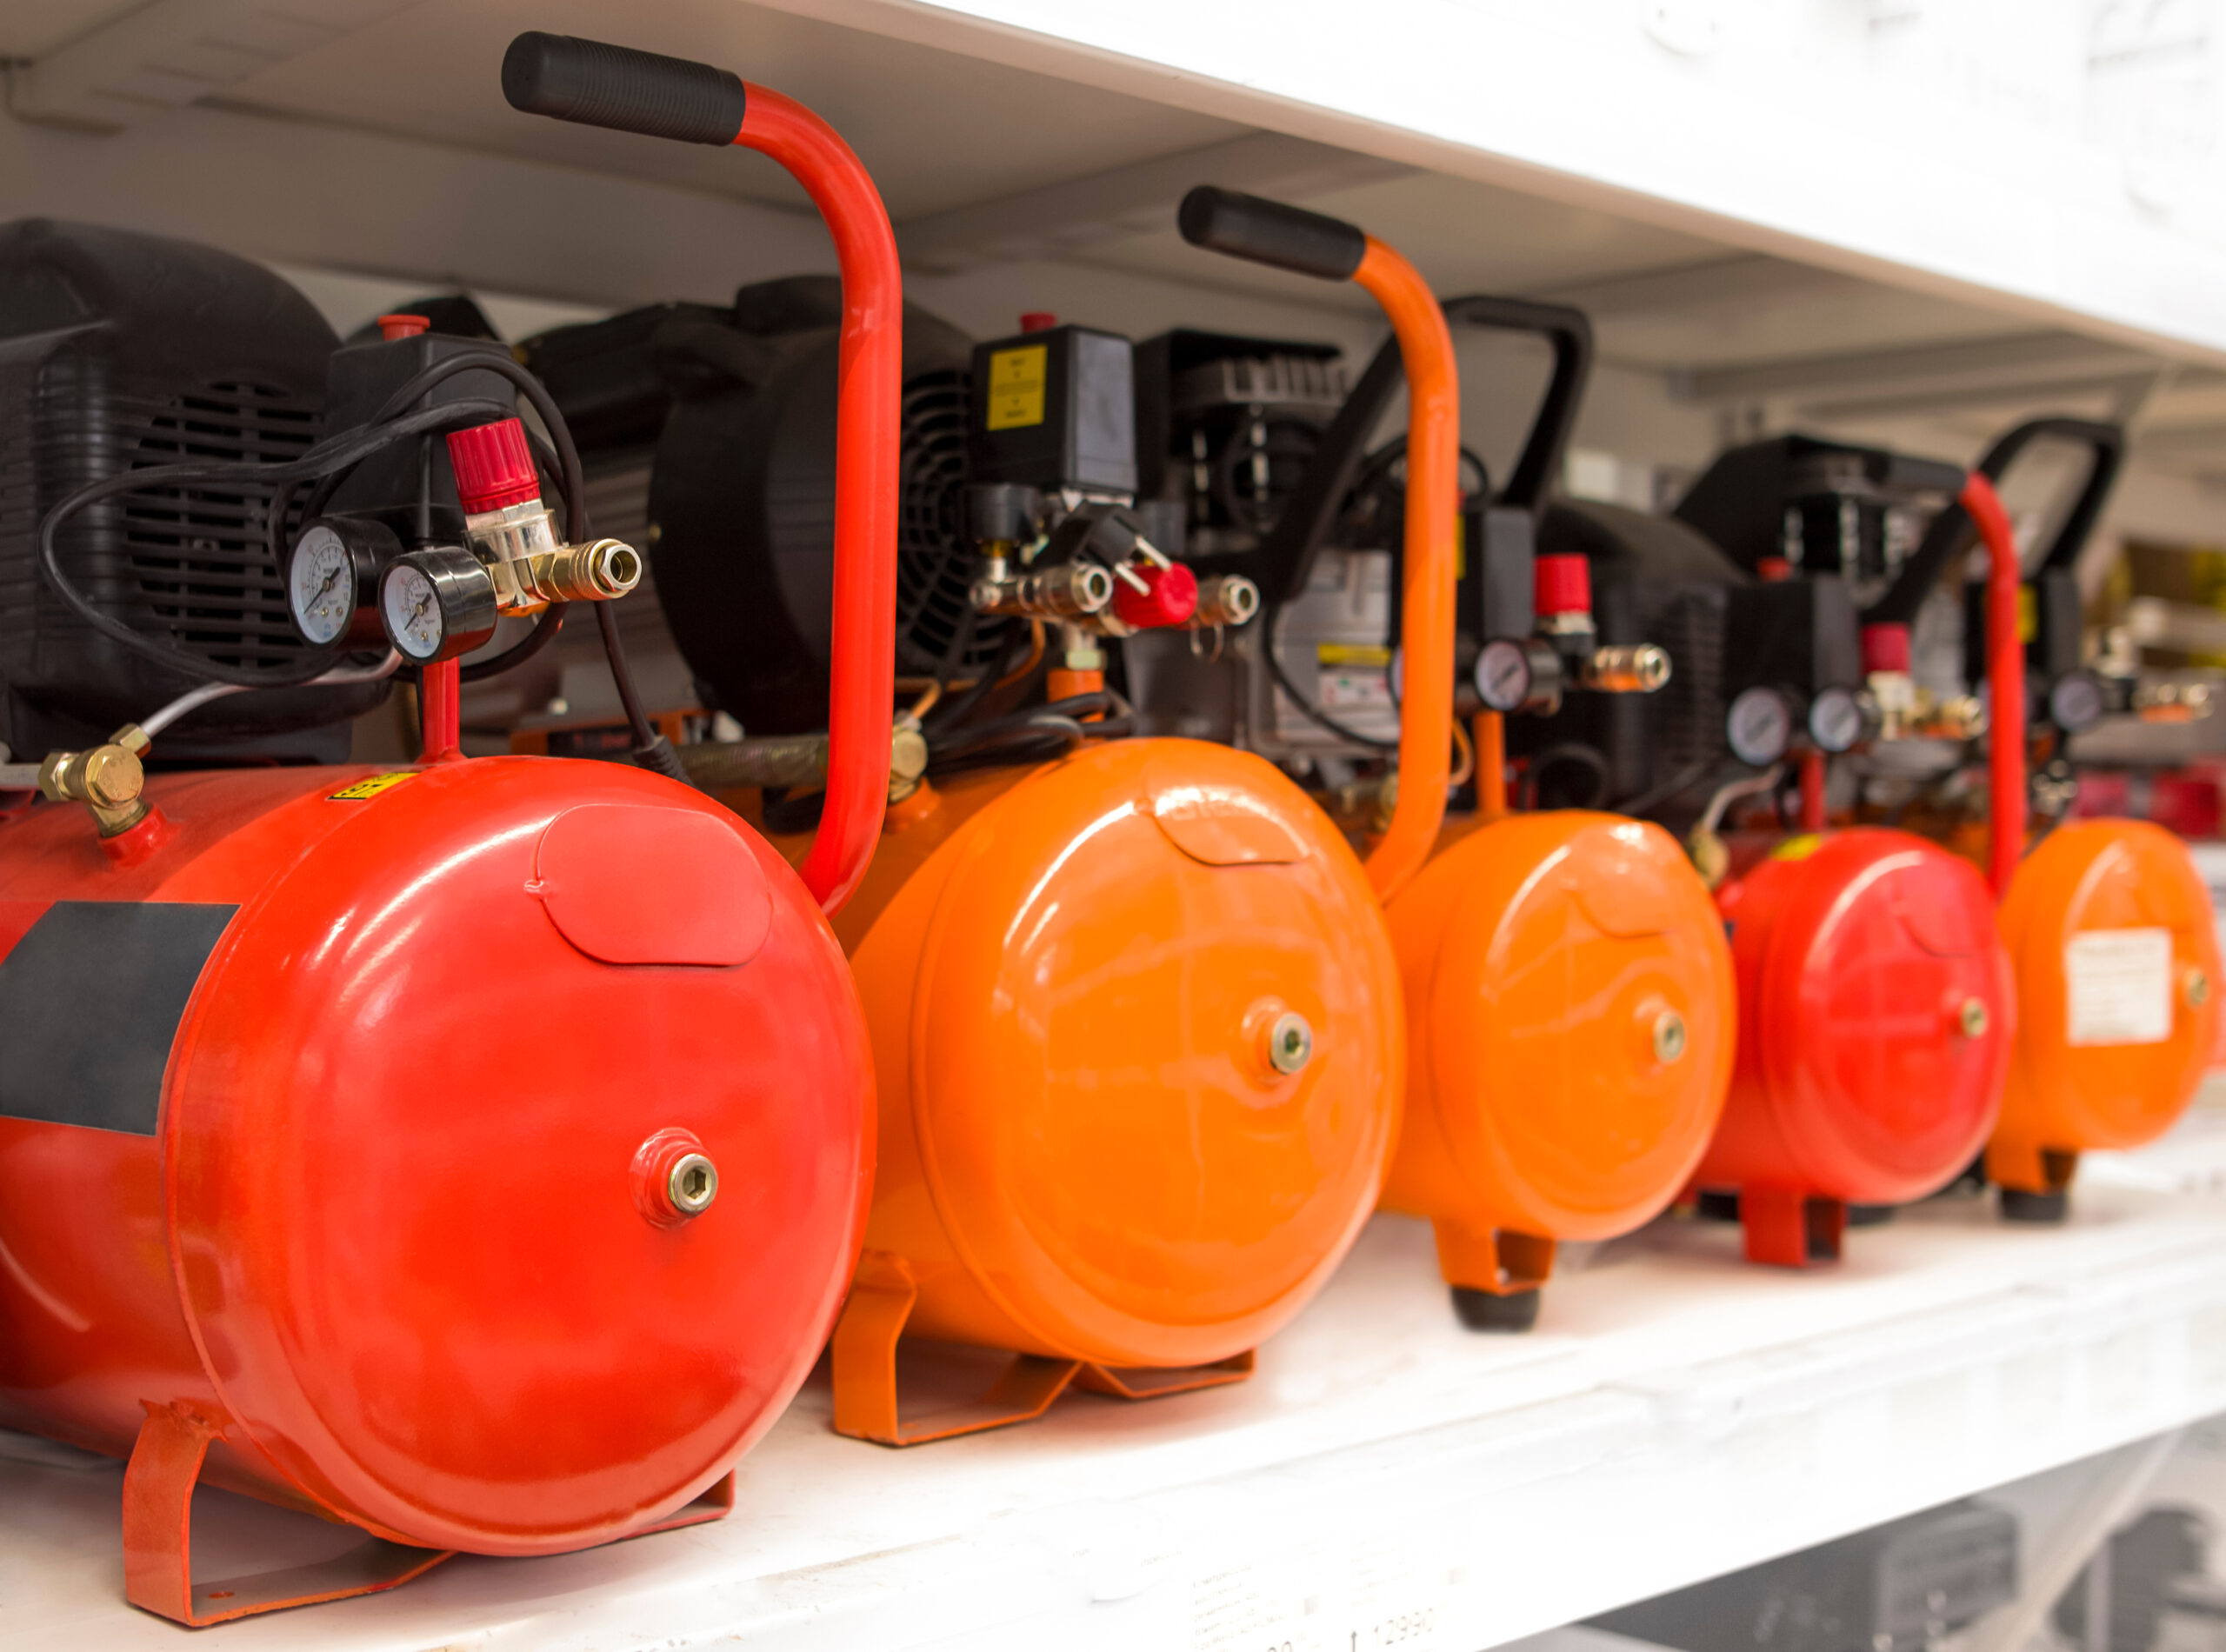 3 Significant Industries That Require Air Compressors